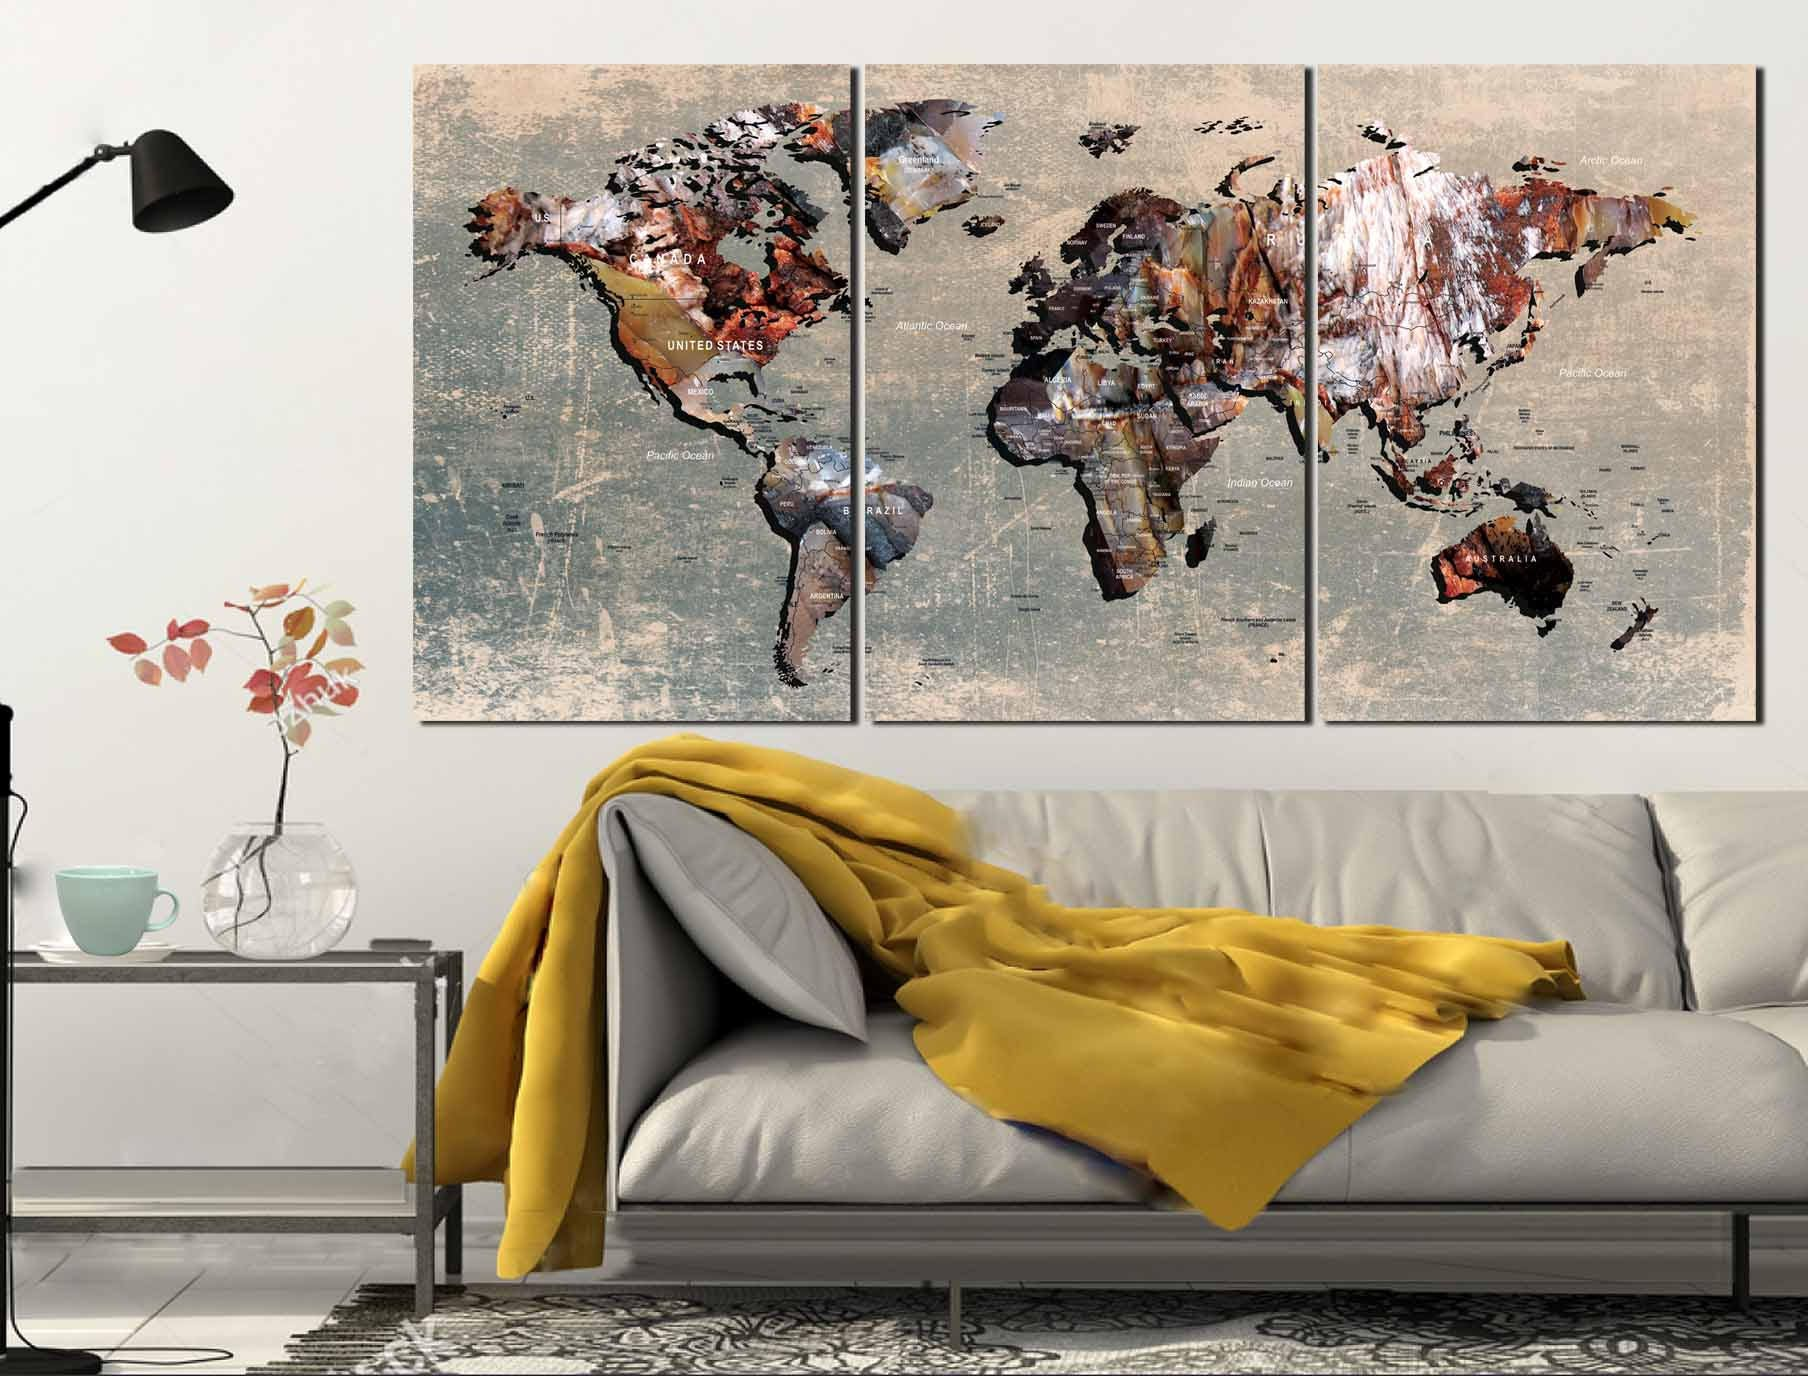 World mapworld map wall artworld map canvaspush pin world map world mapworld map wall artworld map canvaspush pin world mappush pin maptravel map canvaslarge push pin mapworld map texturemap art gumiabroncs